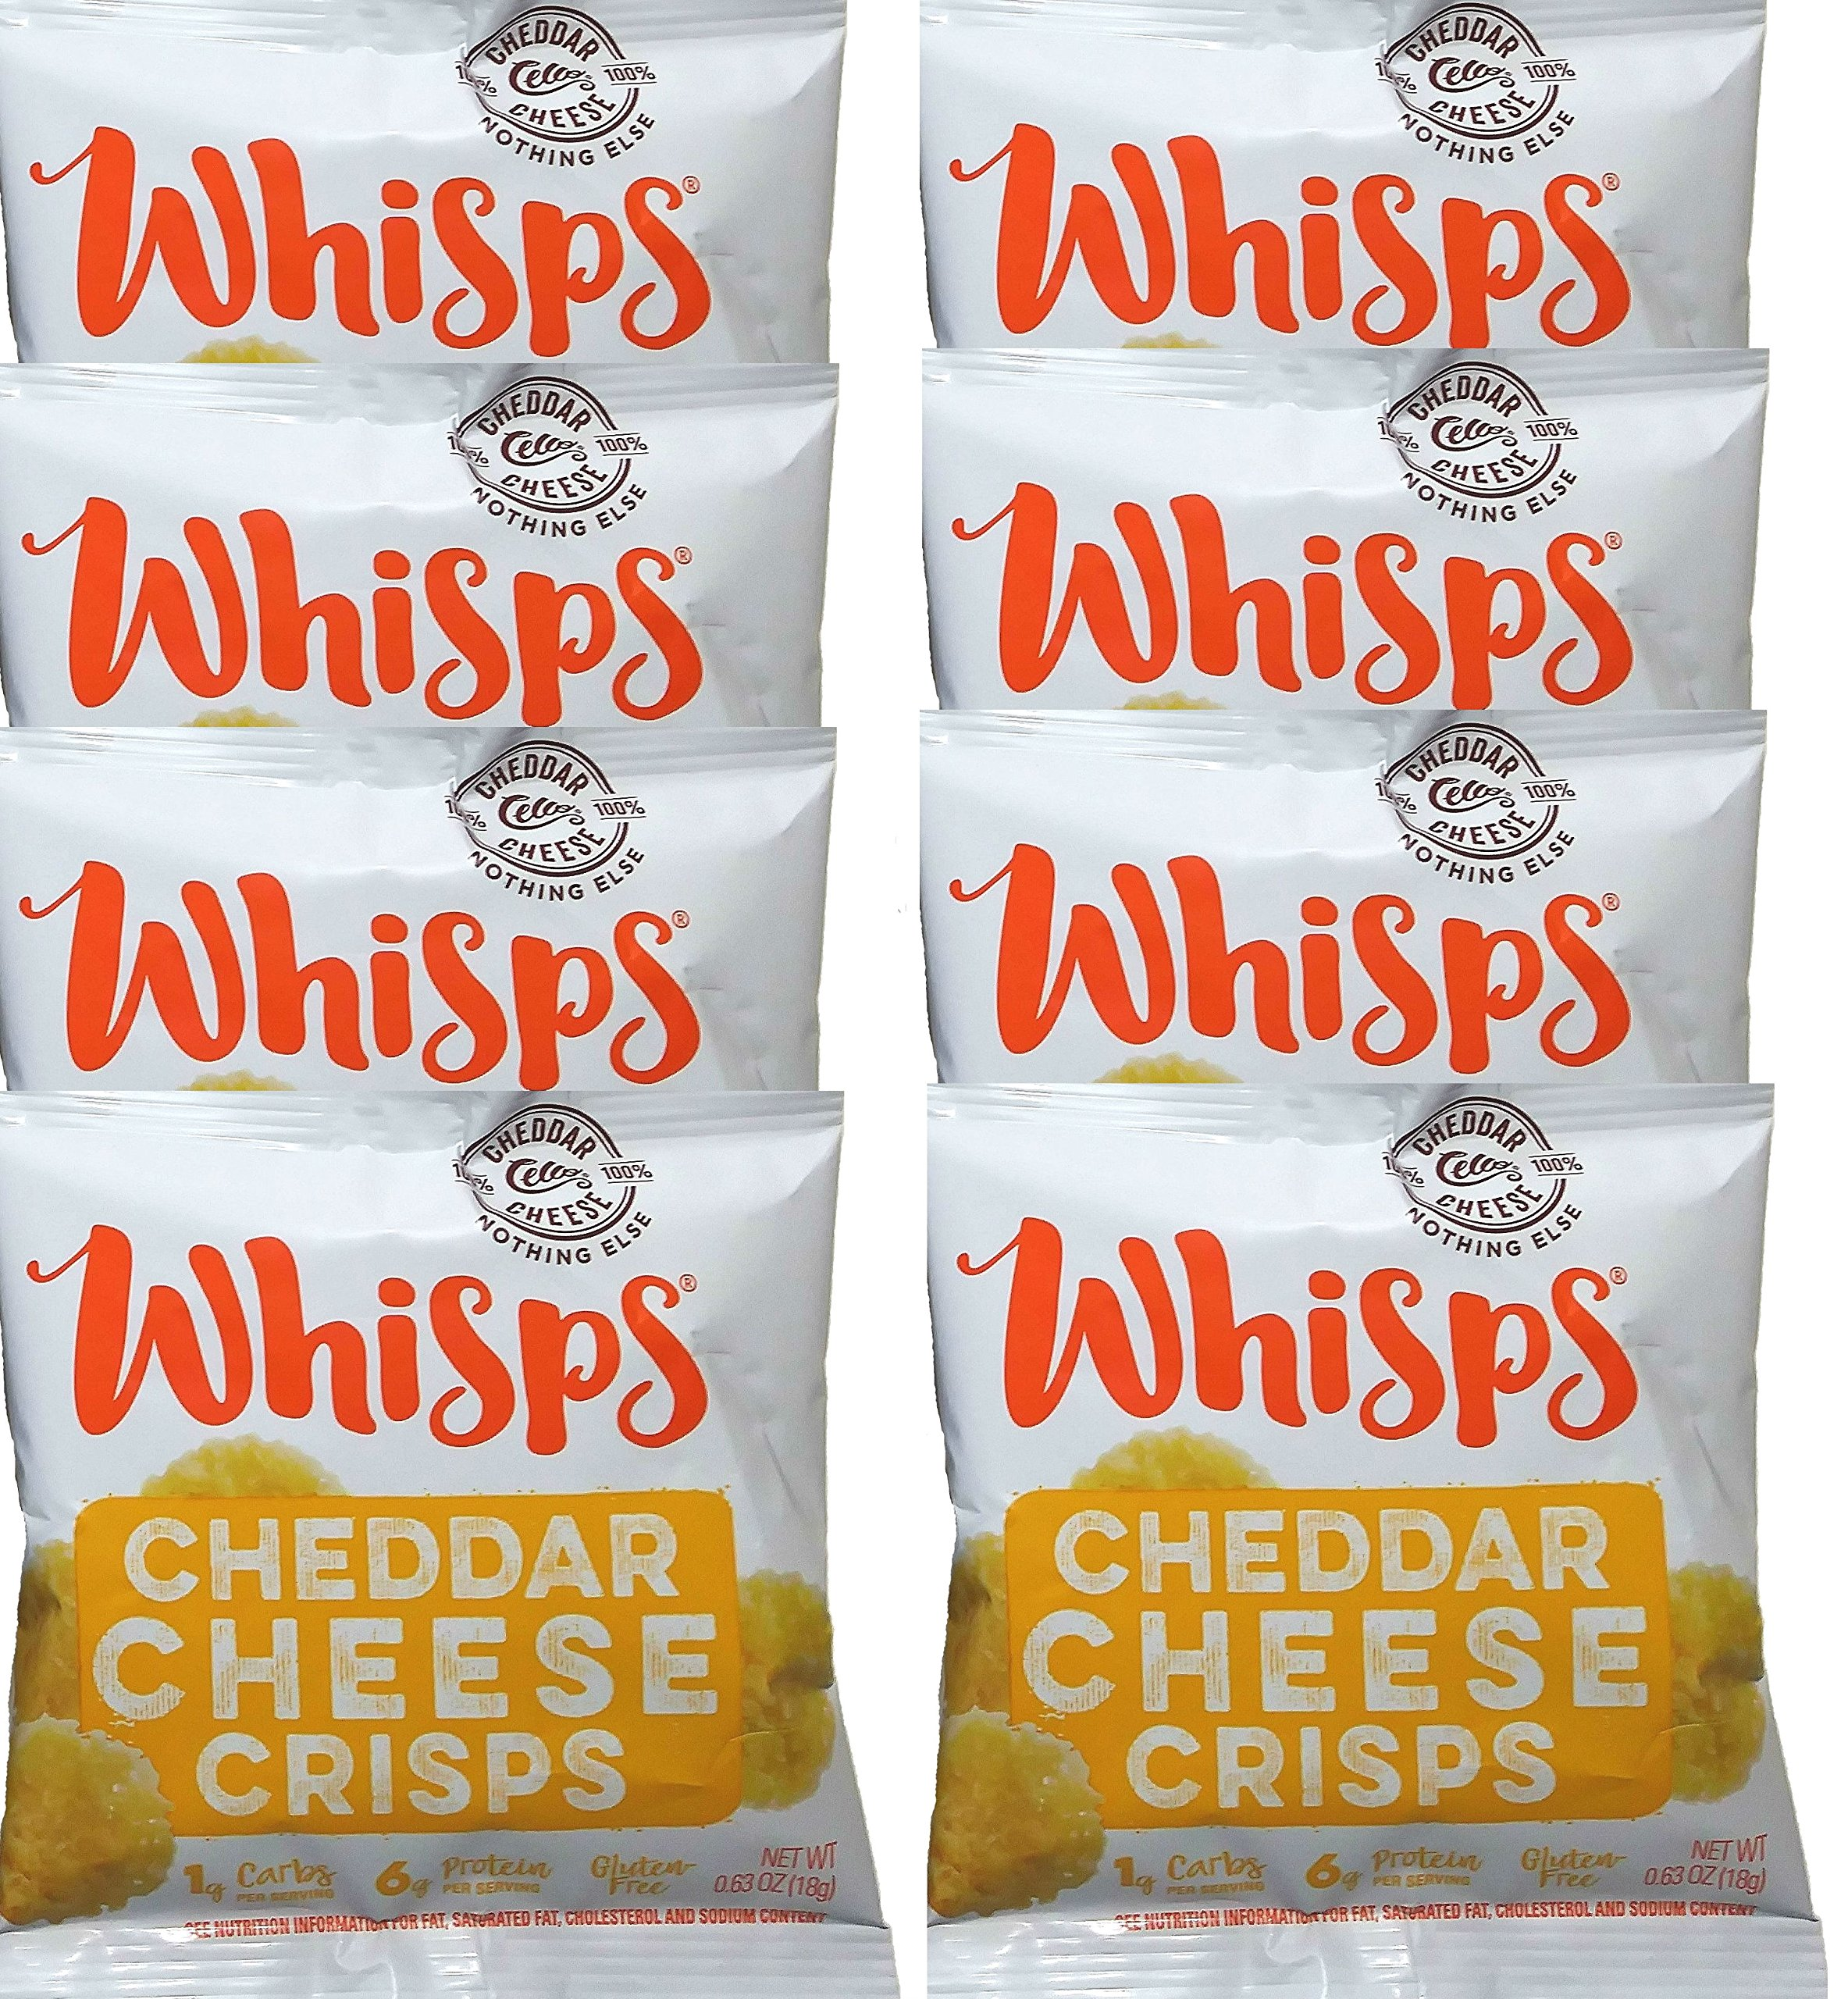 Whisps Cheddar Cheese Crisps, Single Serve Bags, Pack of 8 (.63oz/bag